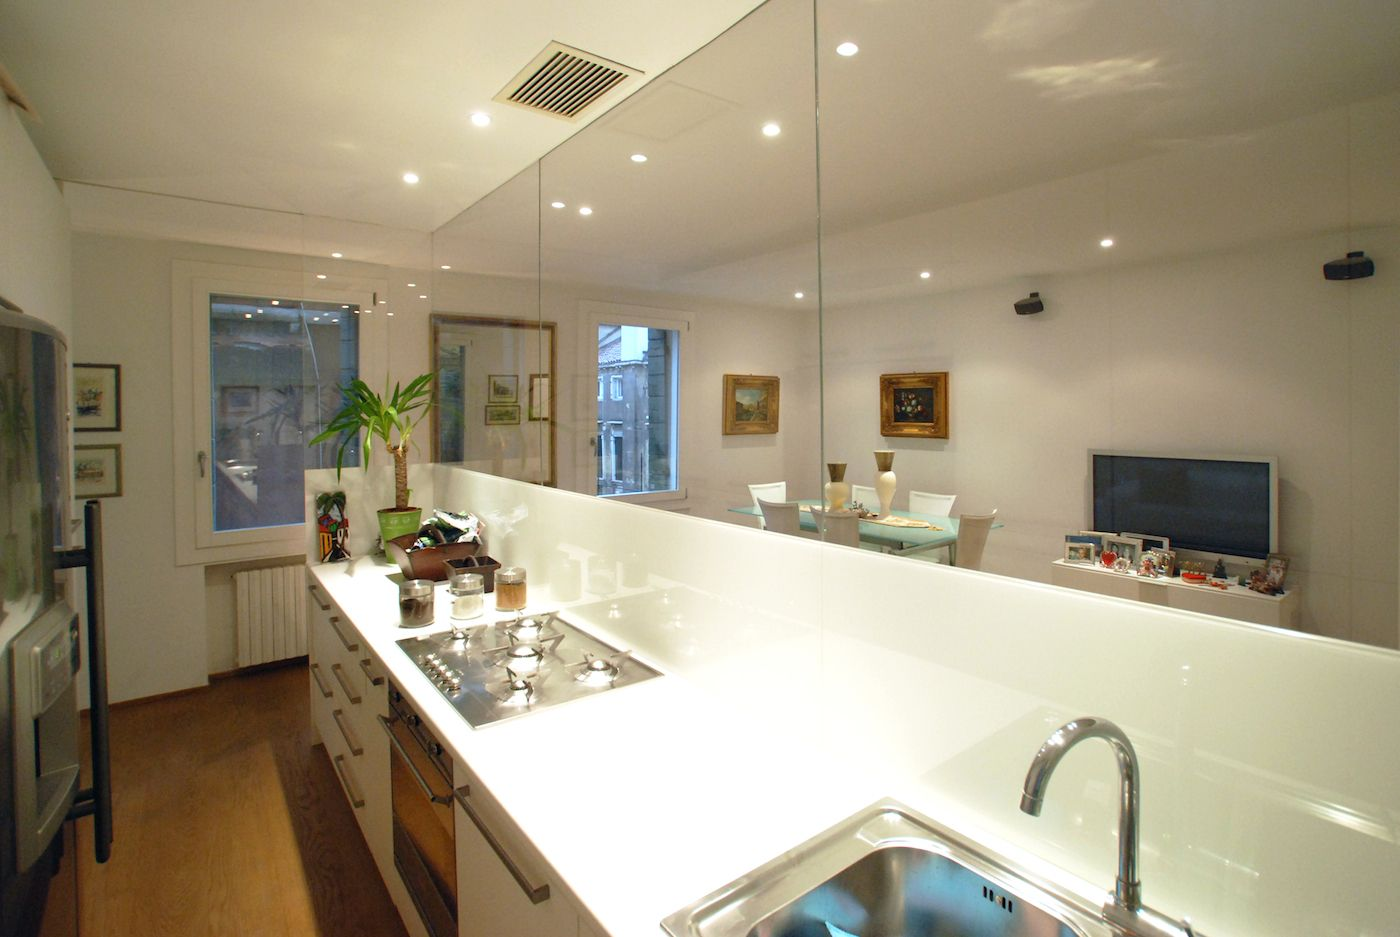 the kitchen is functional and stylish